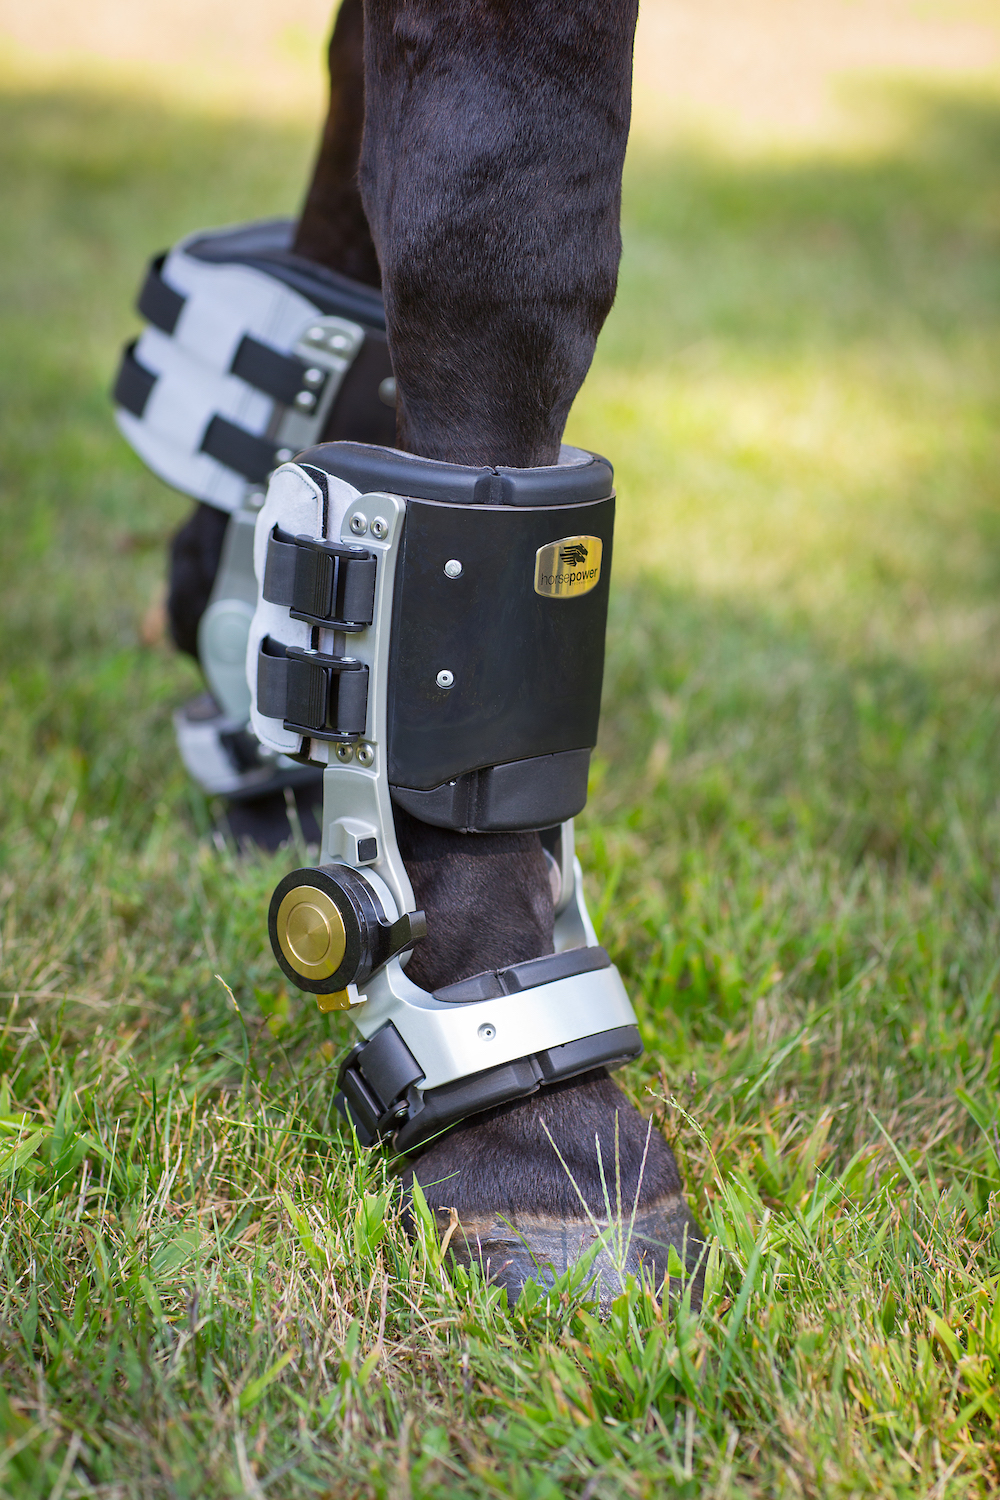 Closeup of the world's first rehabilitative orthotic device for horses.